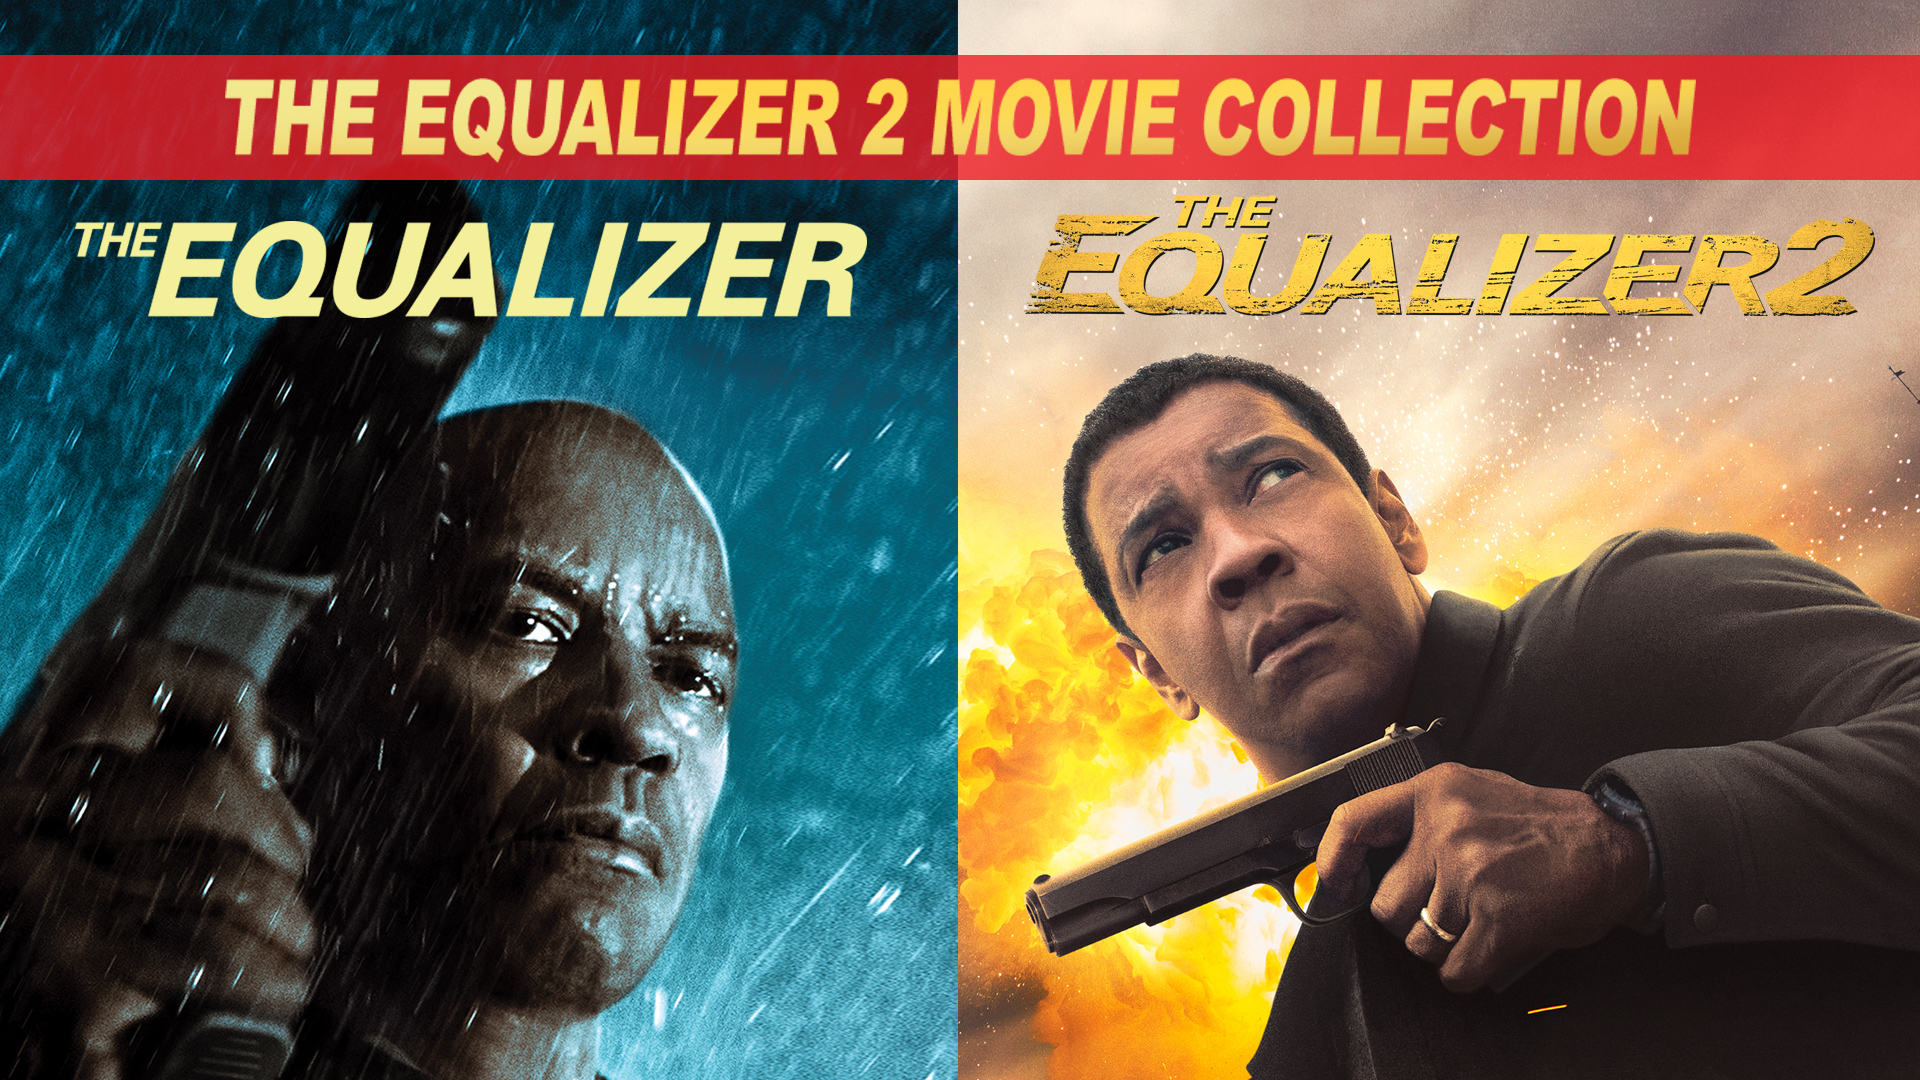 THE EQUALIZER 2-MOVIE COLLECTION